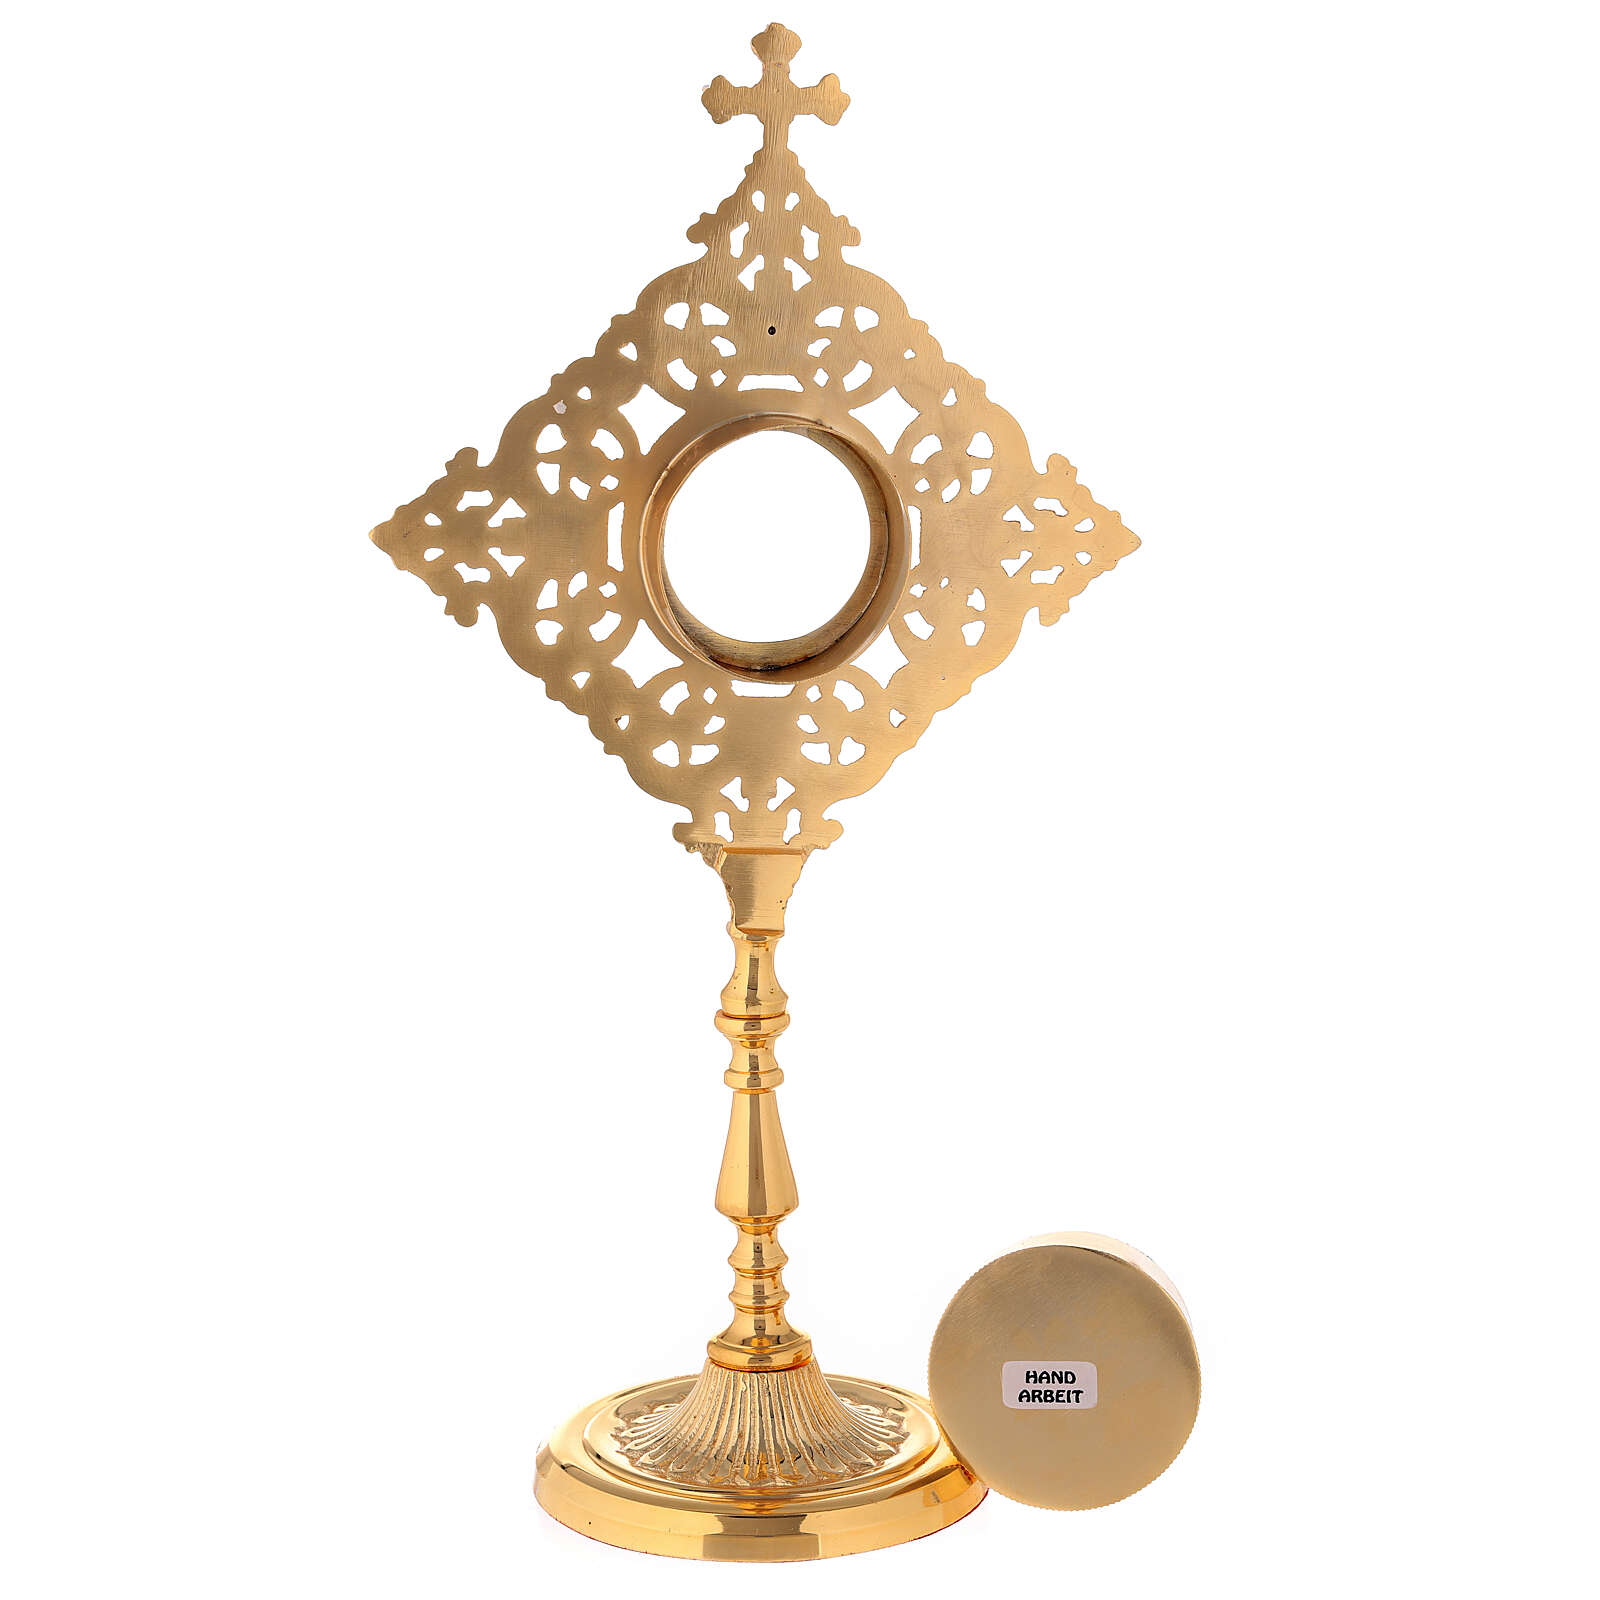 Square frame reliquary in gold plated brass with crystals h 12 1/2 in 4